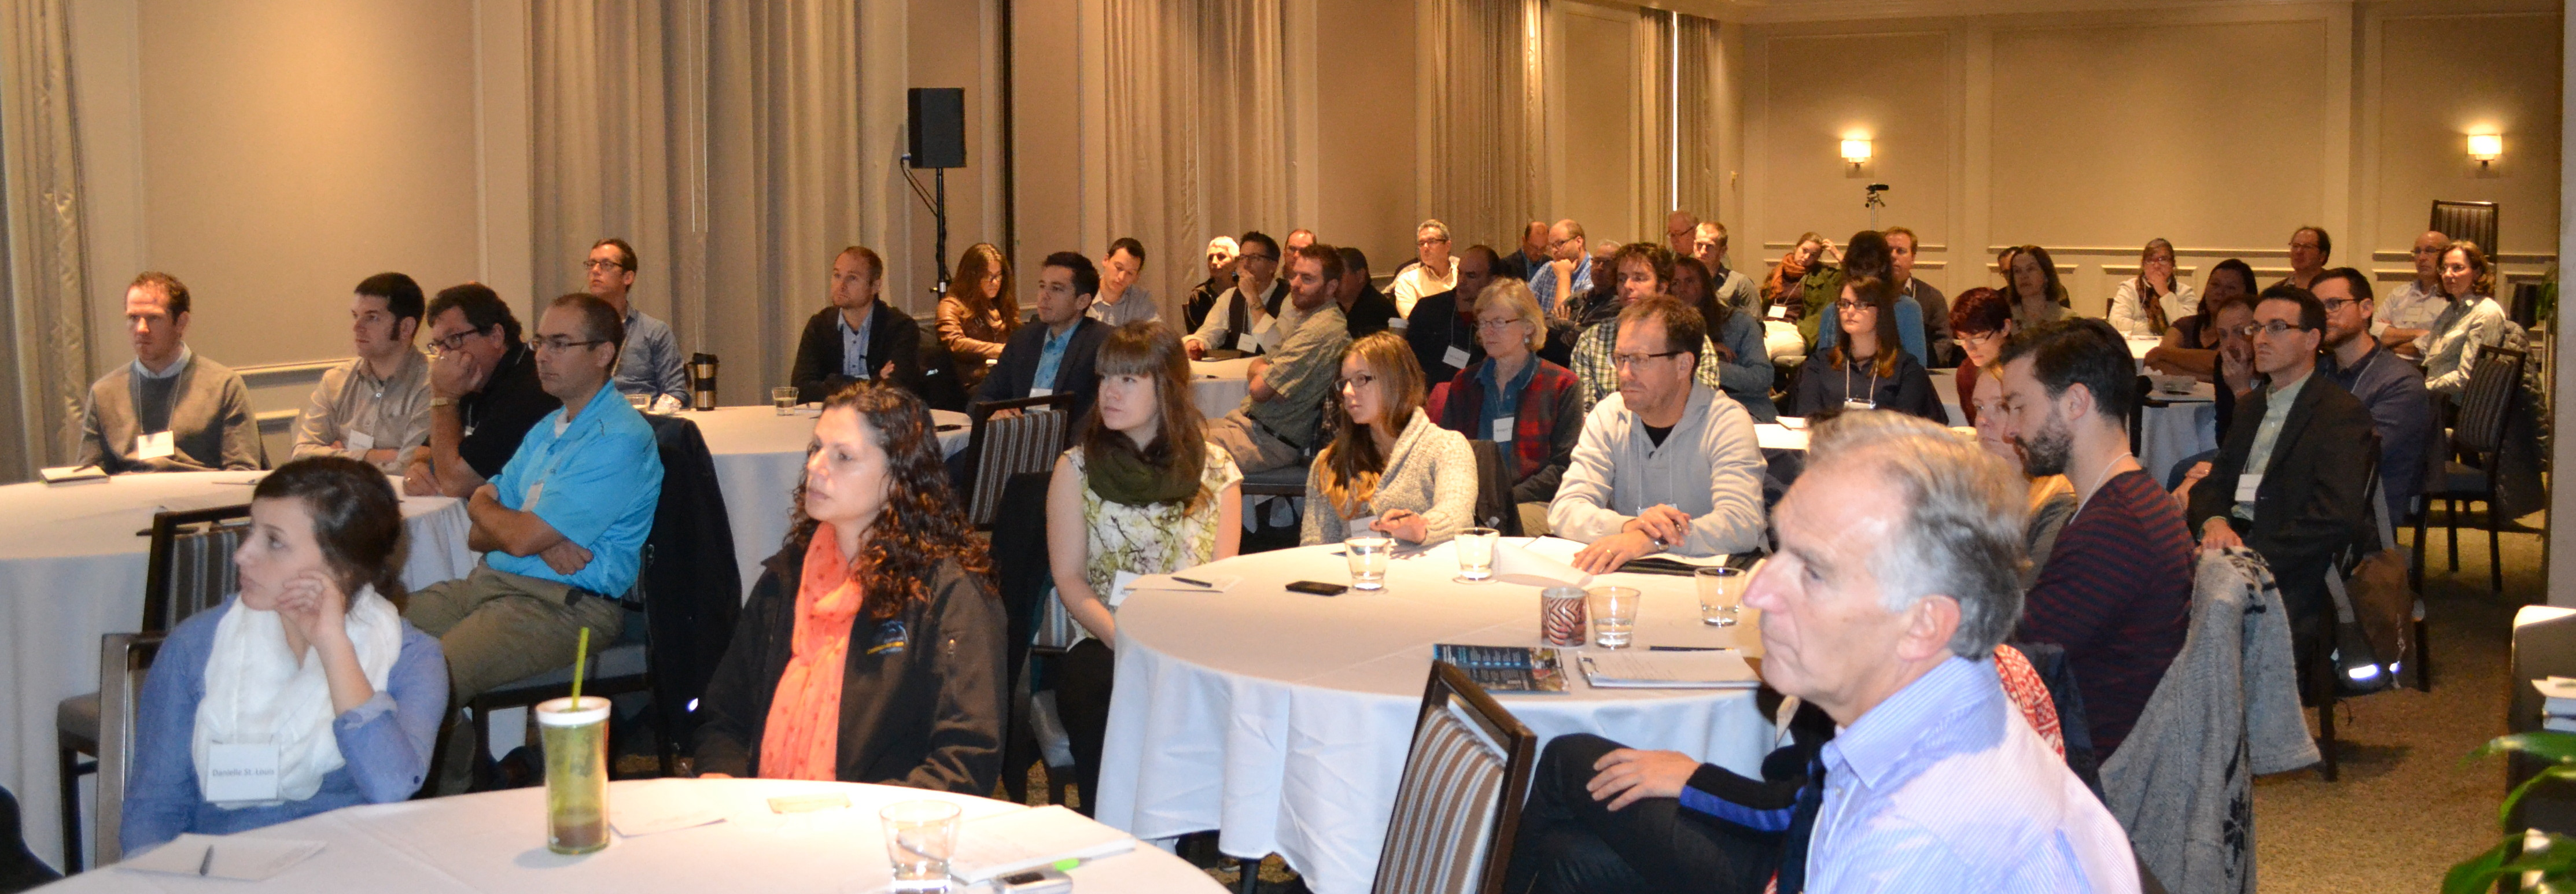 "Workshop hosted by the Ecology Action Centre in Halifax on Nov 3, 2014 attracted 55 registrants to hear ""the BC story"""